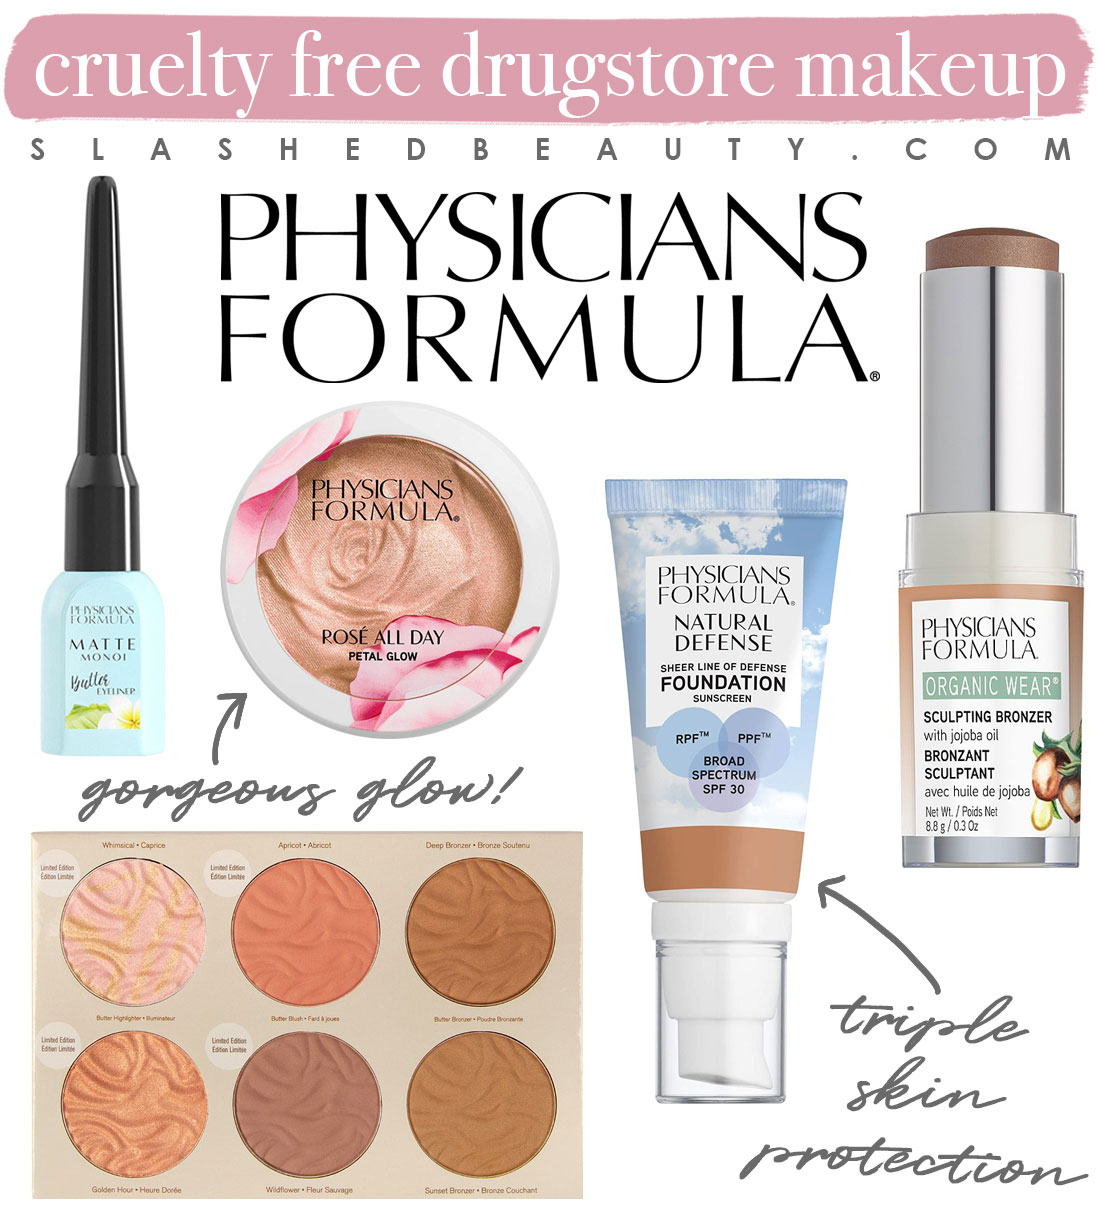 My 5 Favorite Cruelty Free Drugstore Makeup Brands   Physicians Formula Makeup Collage   Slashed Beauty